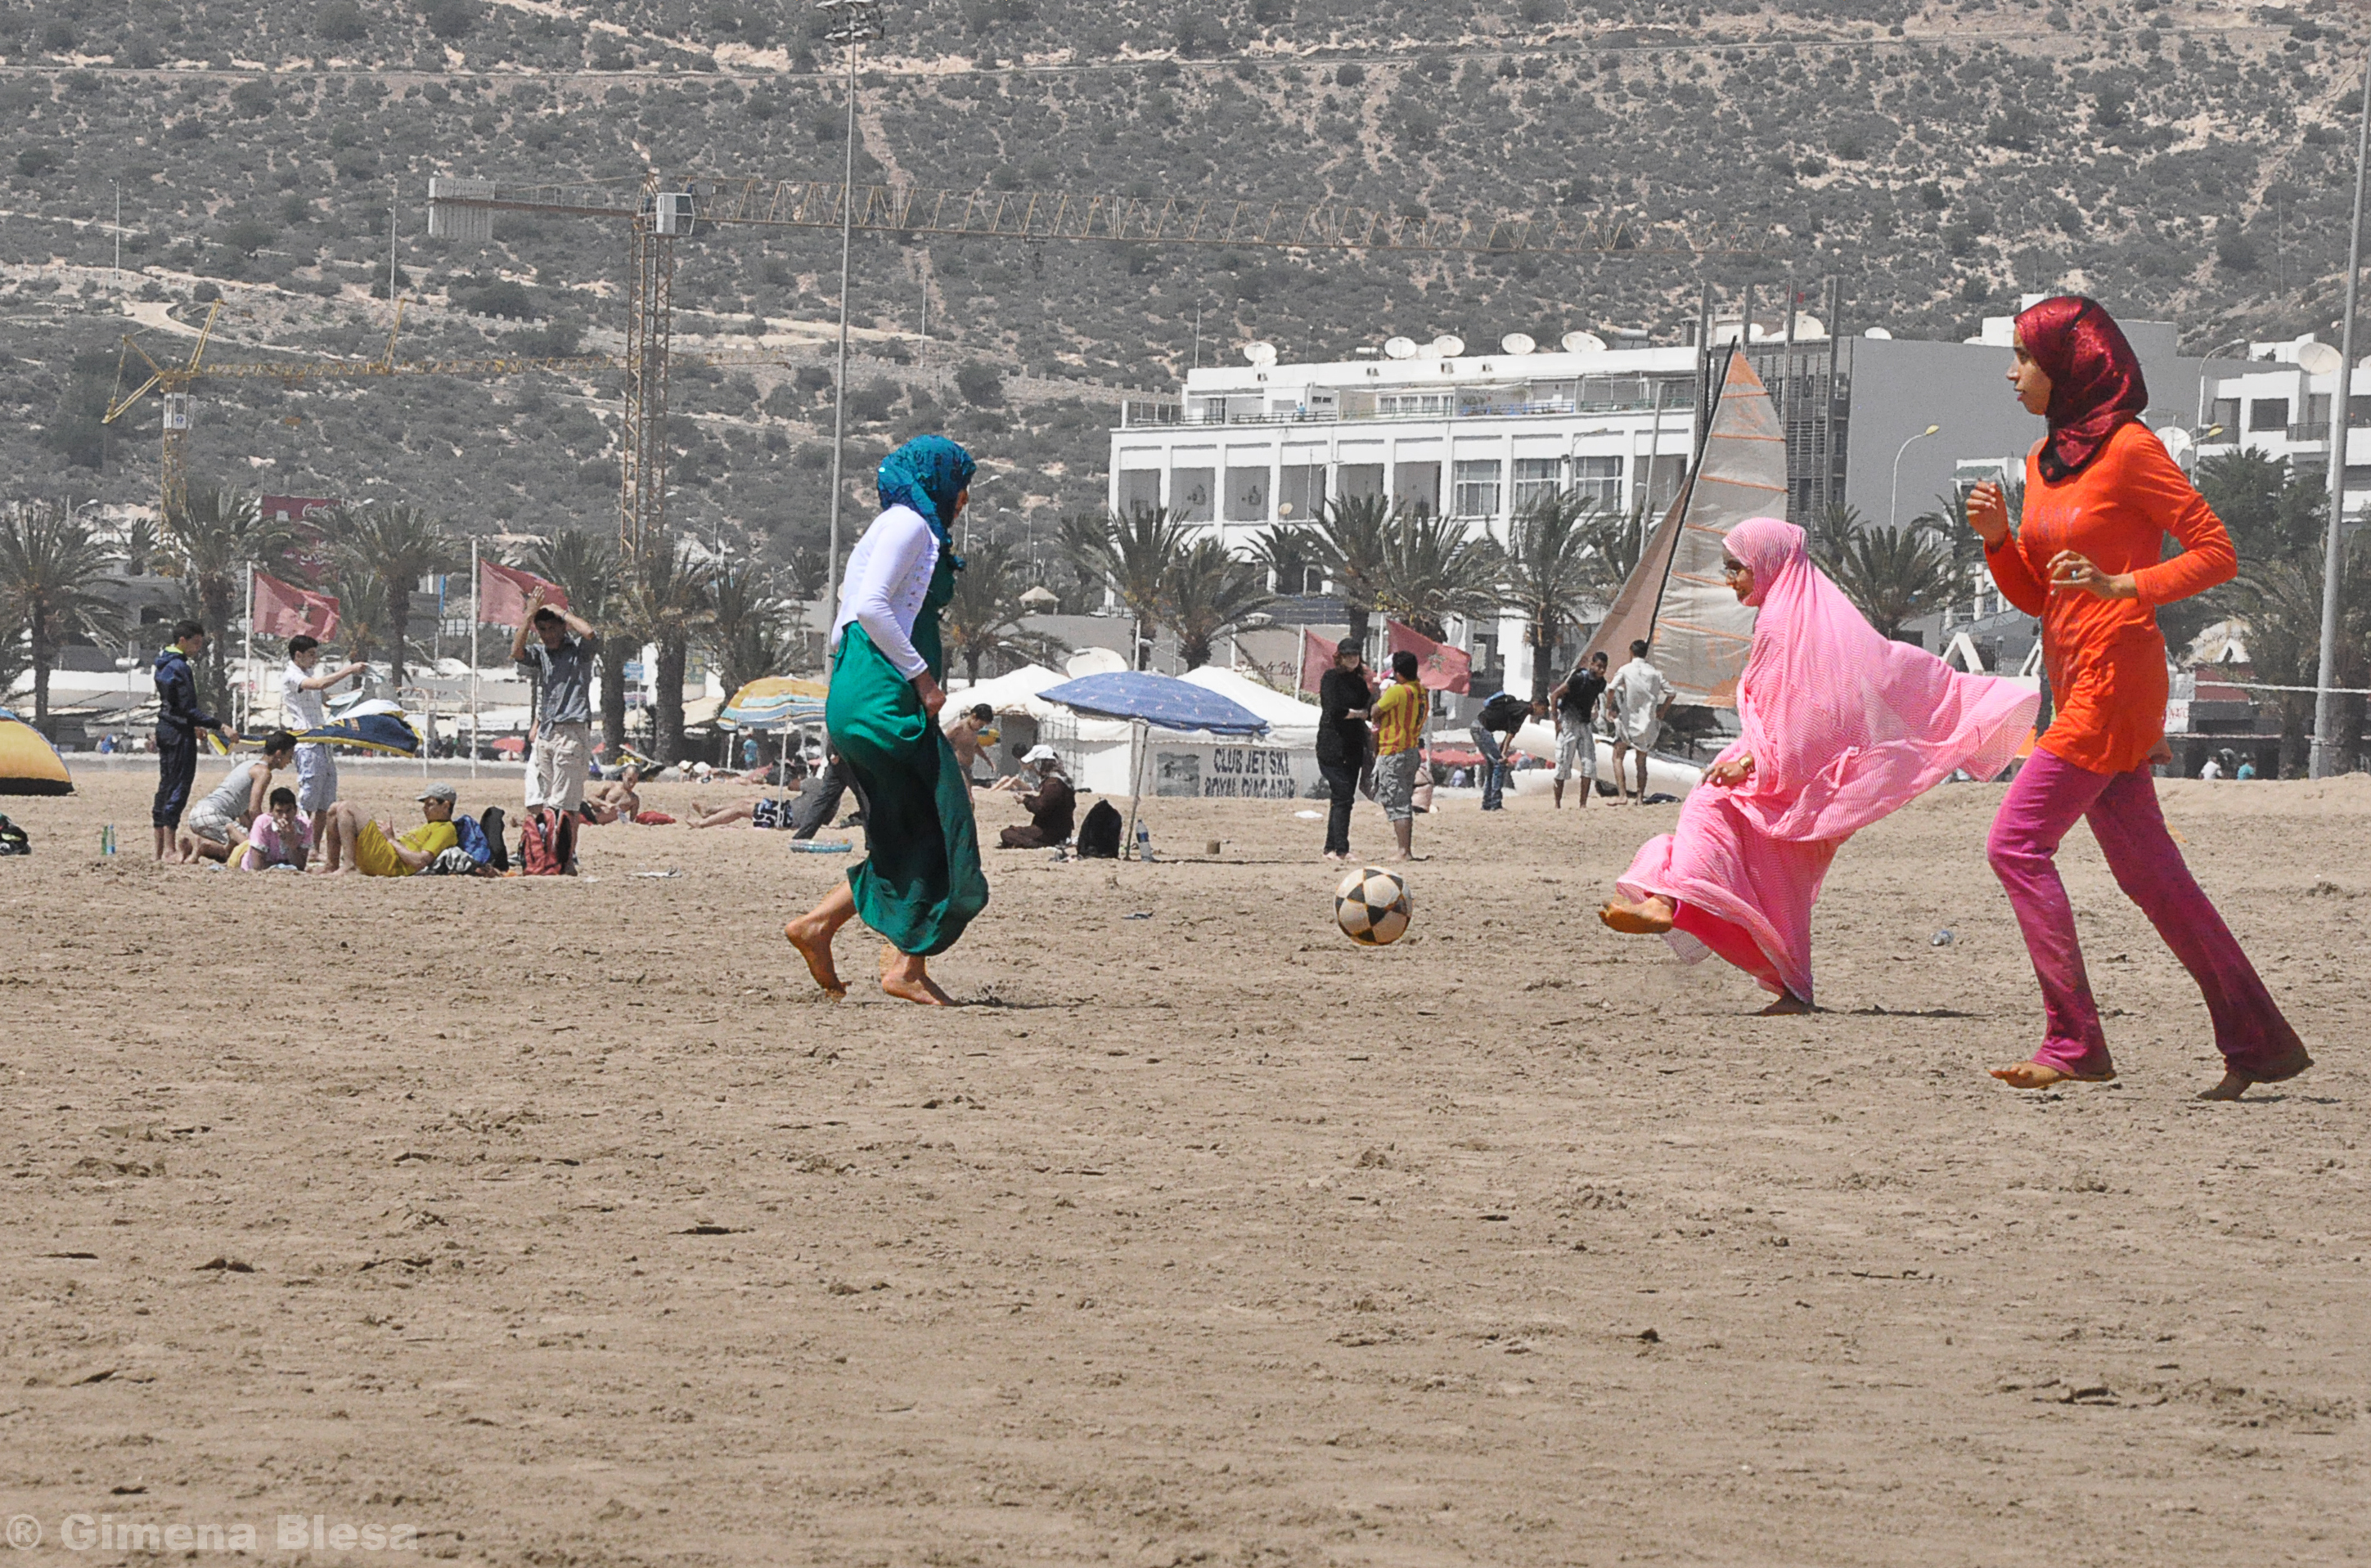 Moroccan girls playing football on the beach, Agadir, Morocco